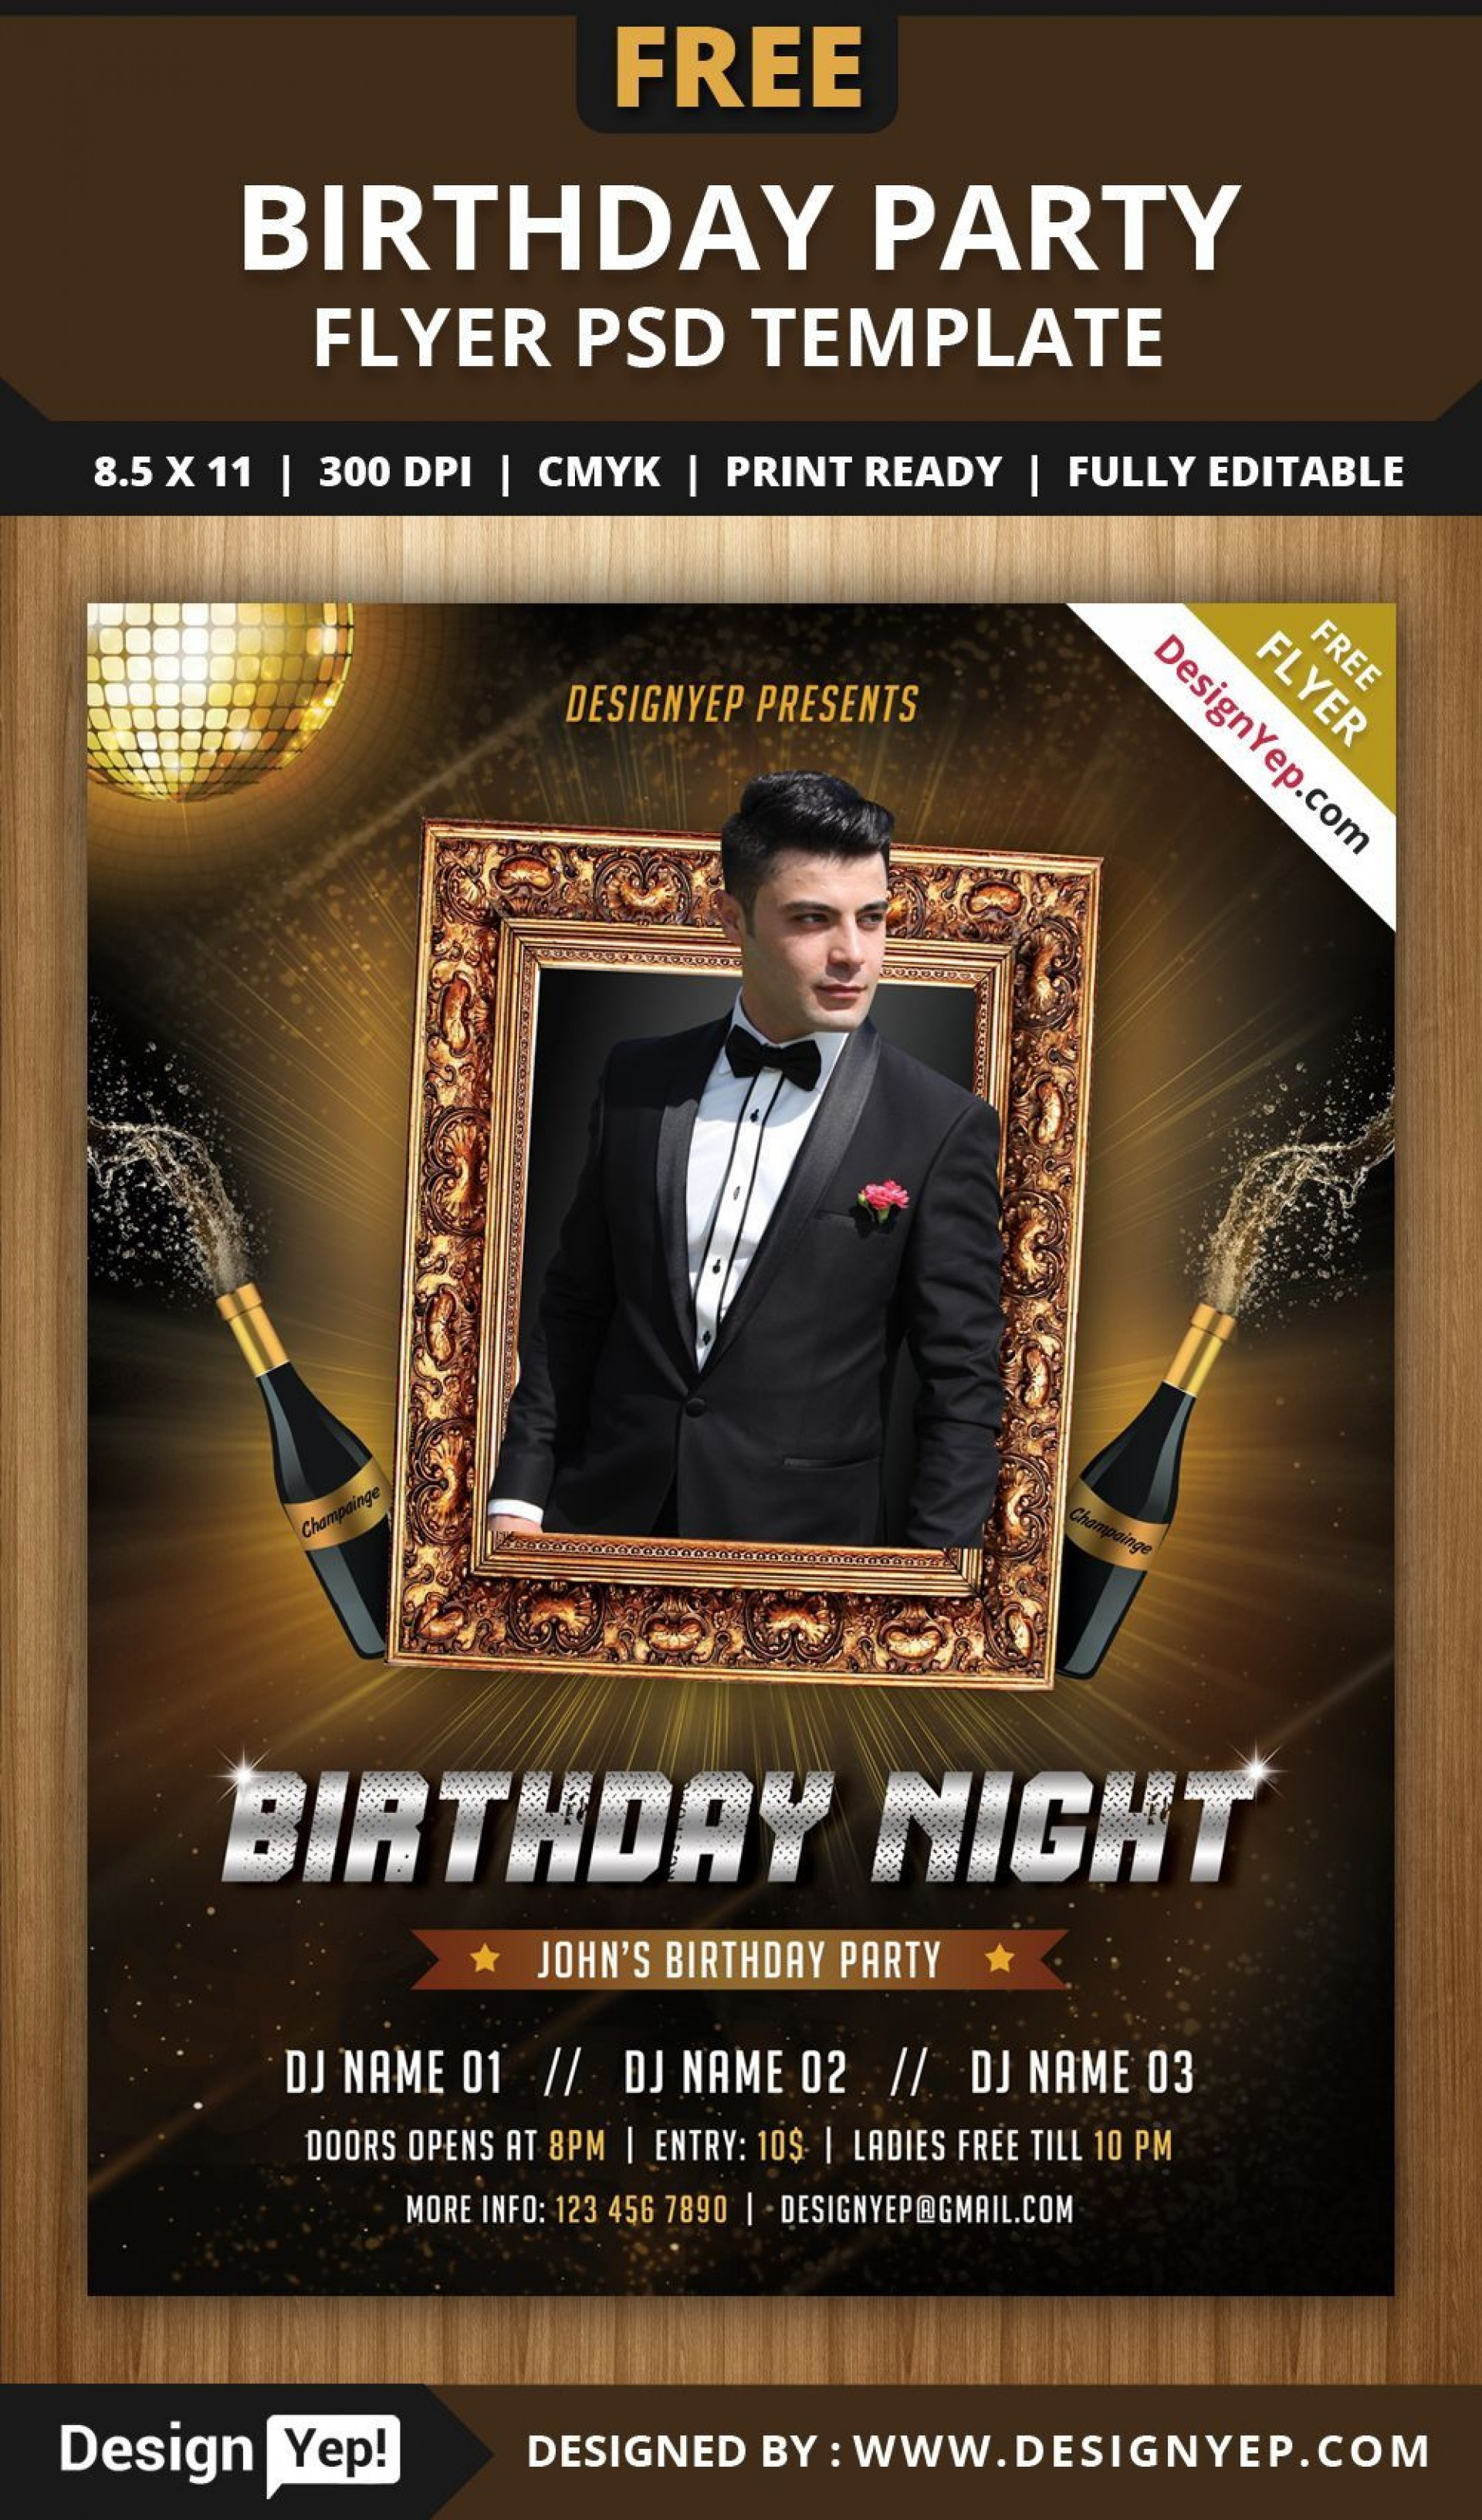 002 Fearsome Free Birthday Flyer Template Psd Inspiration  Foam Party - Neon Glow Download Pool1920